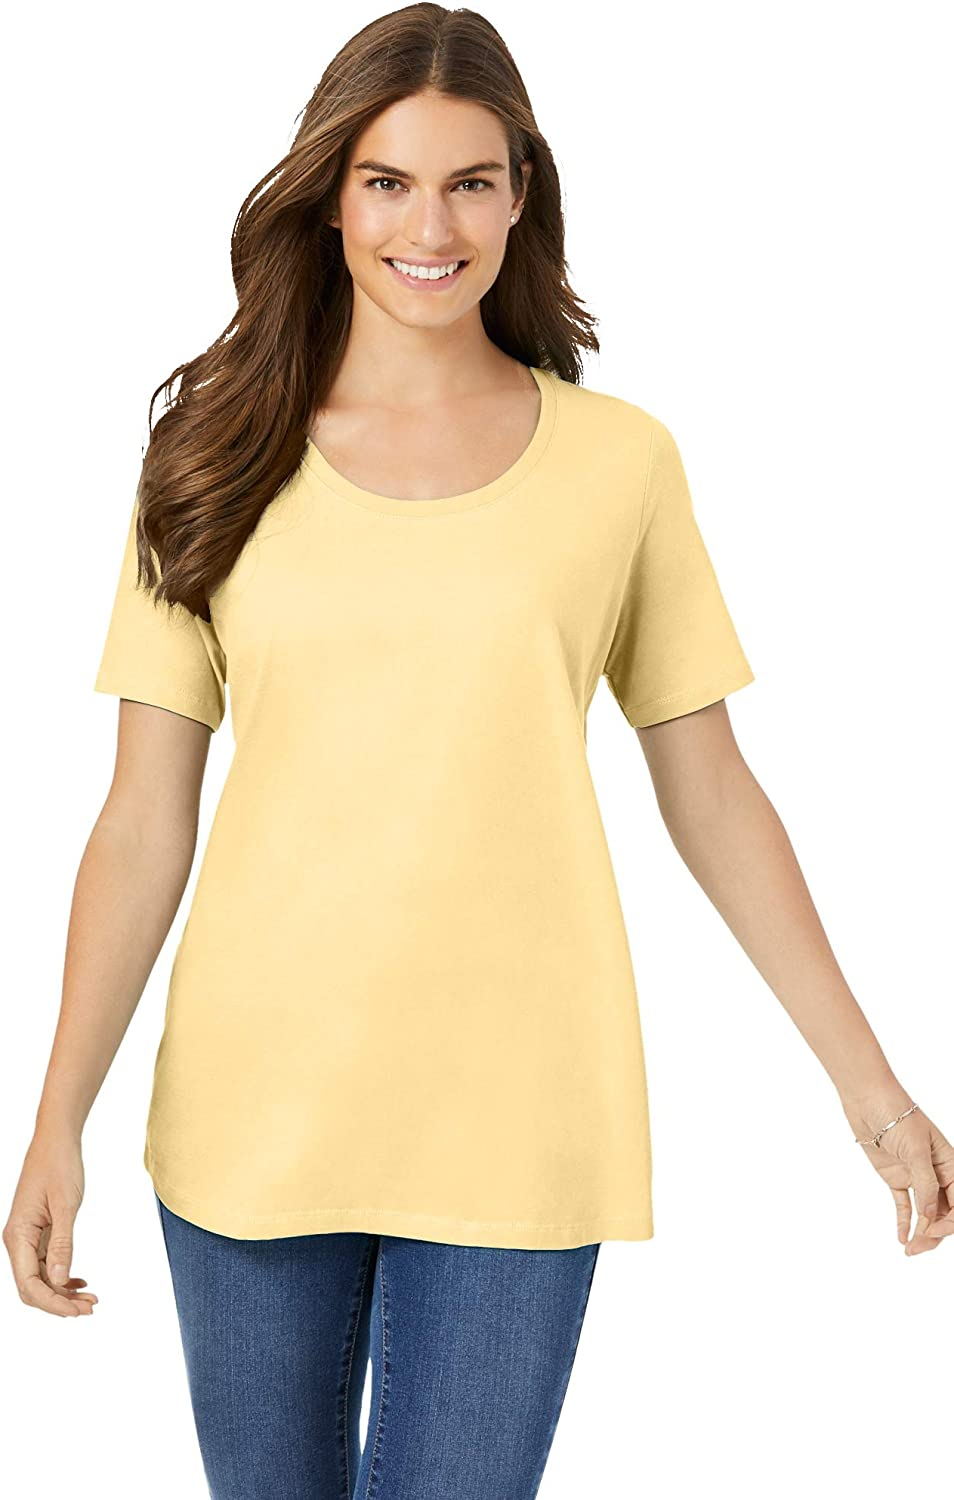 Woman Within Women's Plus Size Perfect Short-Sleeve Scoop-Neck Tee Shirt